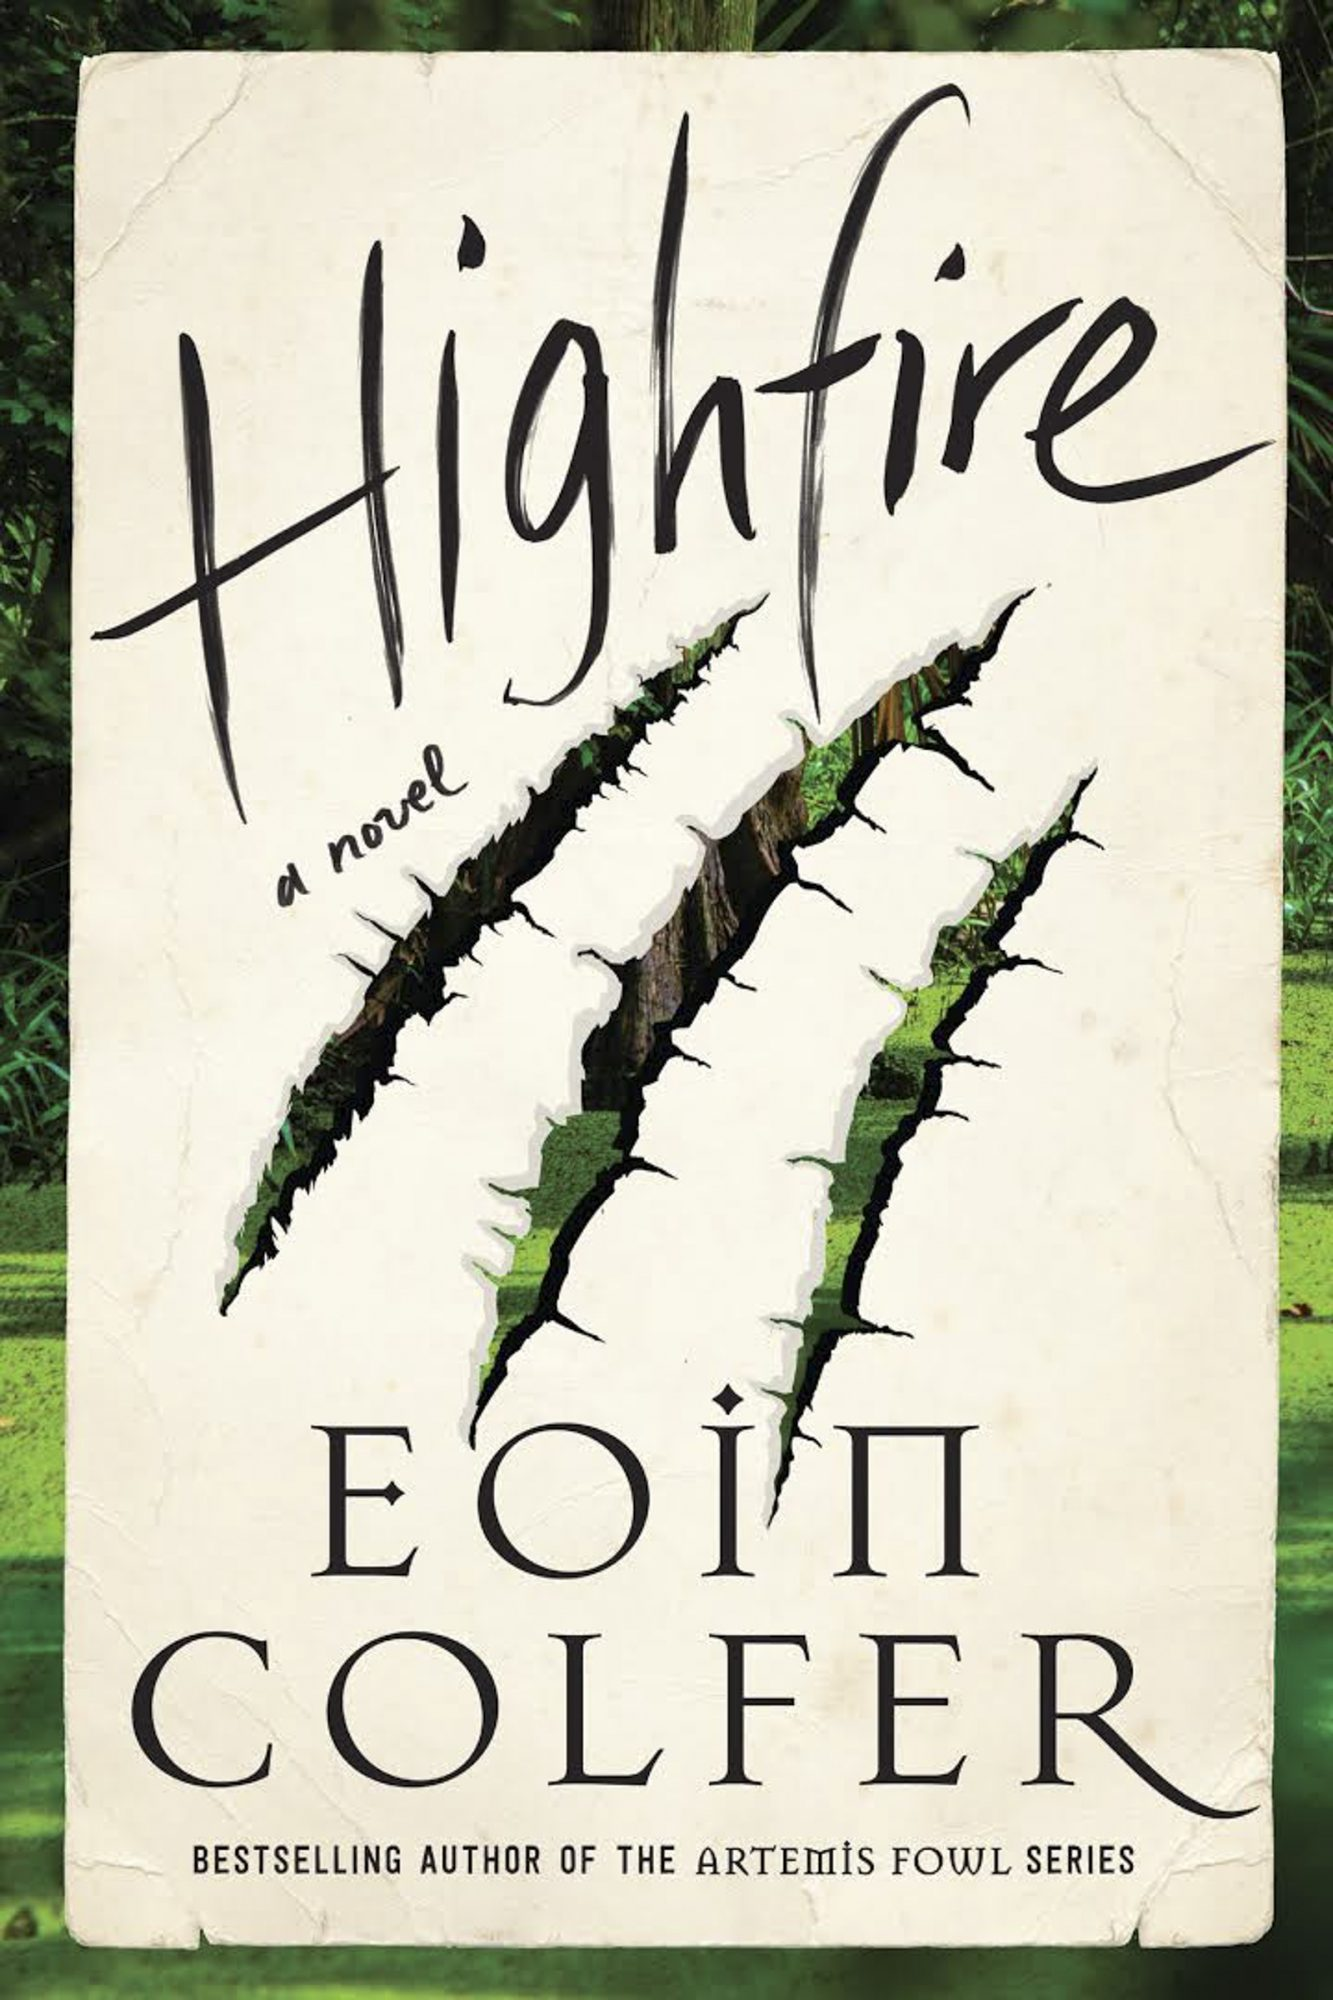 Highfire, by Eoin Colfer